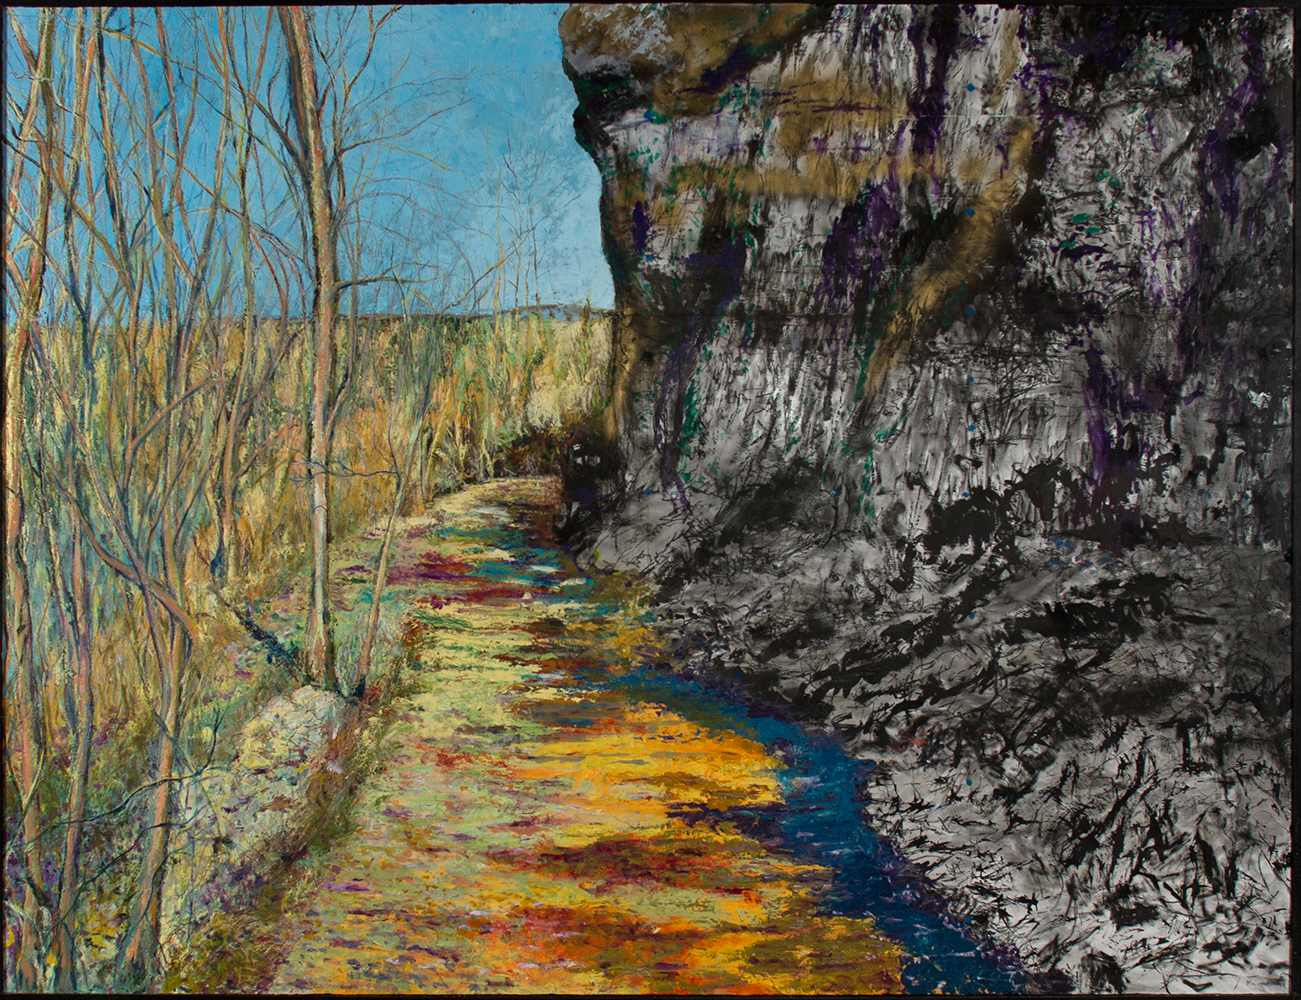 THE PATH TO THE GORGE / MEDICINE PIECE